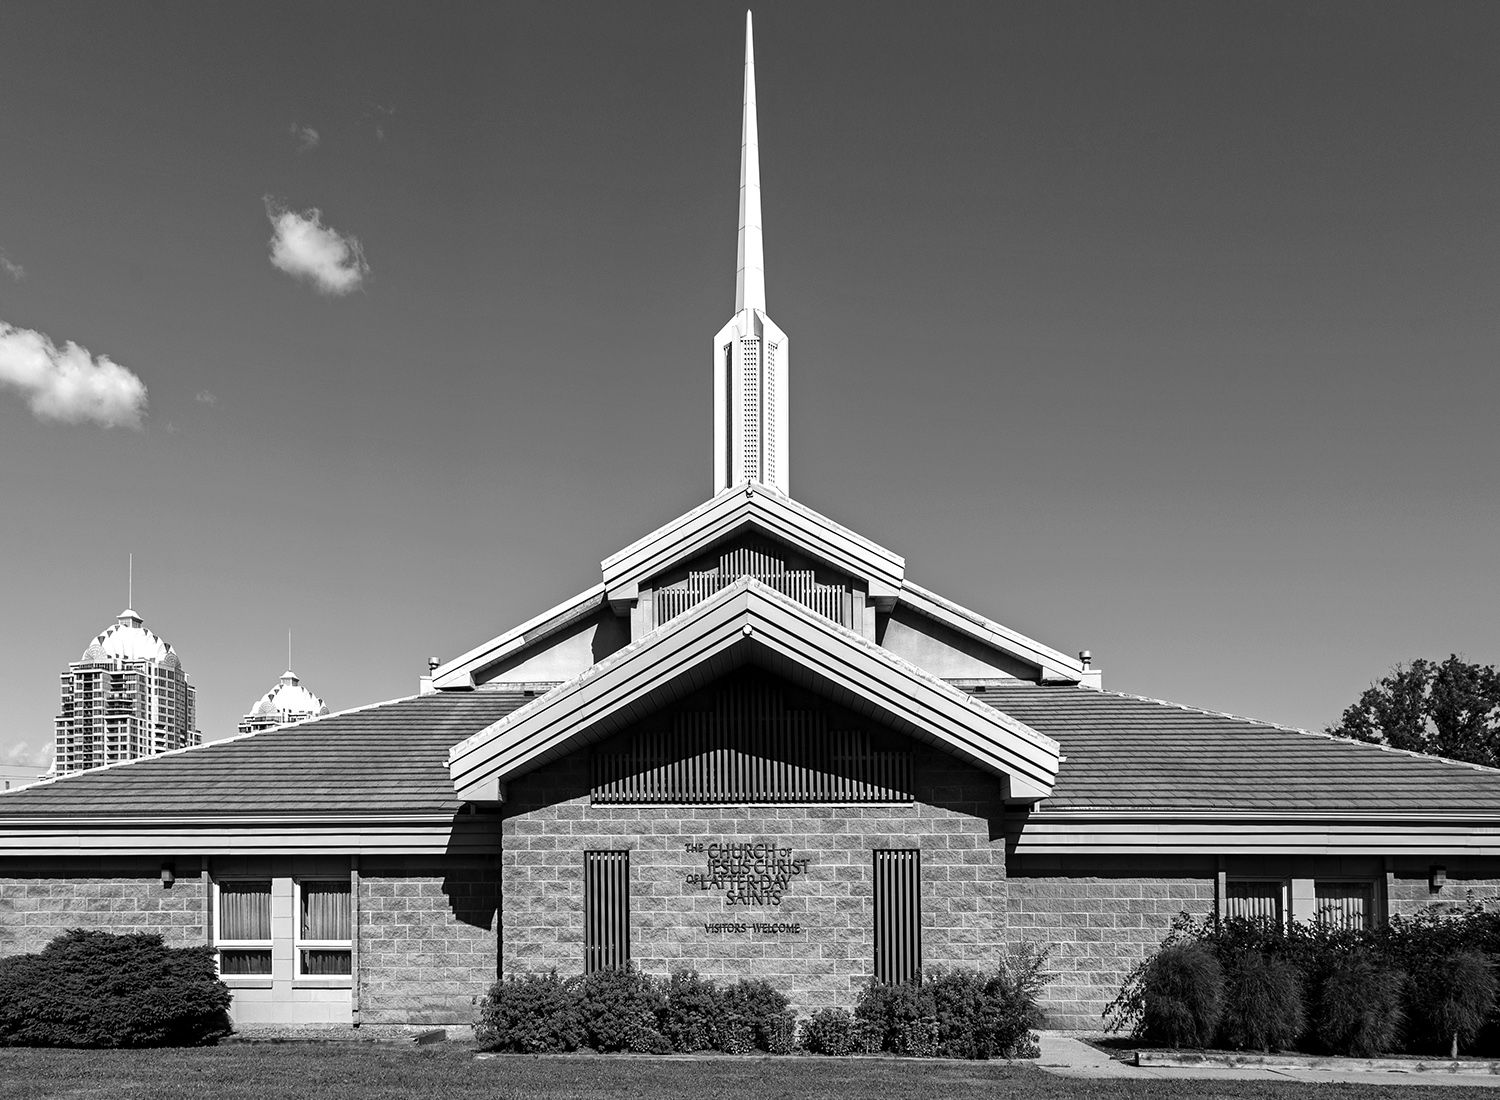 20160915. The futuristic ranch-style church of the Latter Day Sa